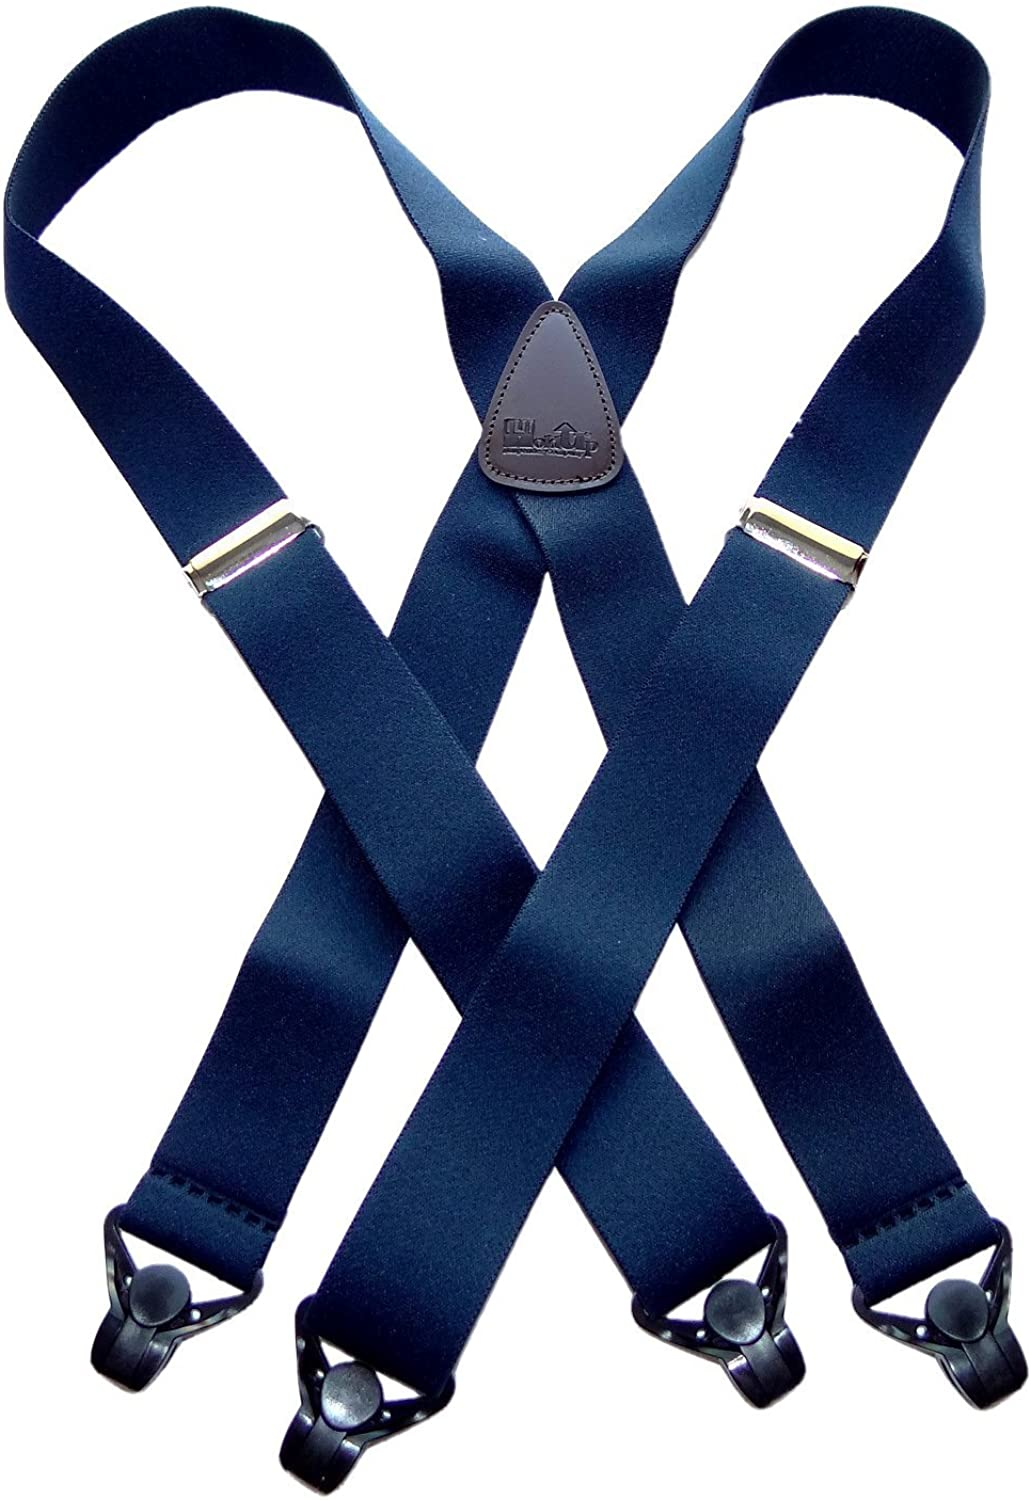 Holdup Classic Series Basic Blue XL X-back Suspenders with patented black Gripper Clasp